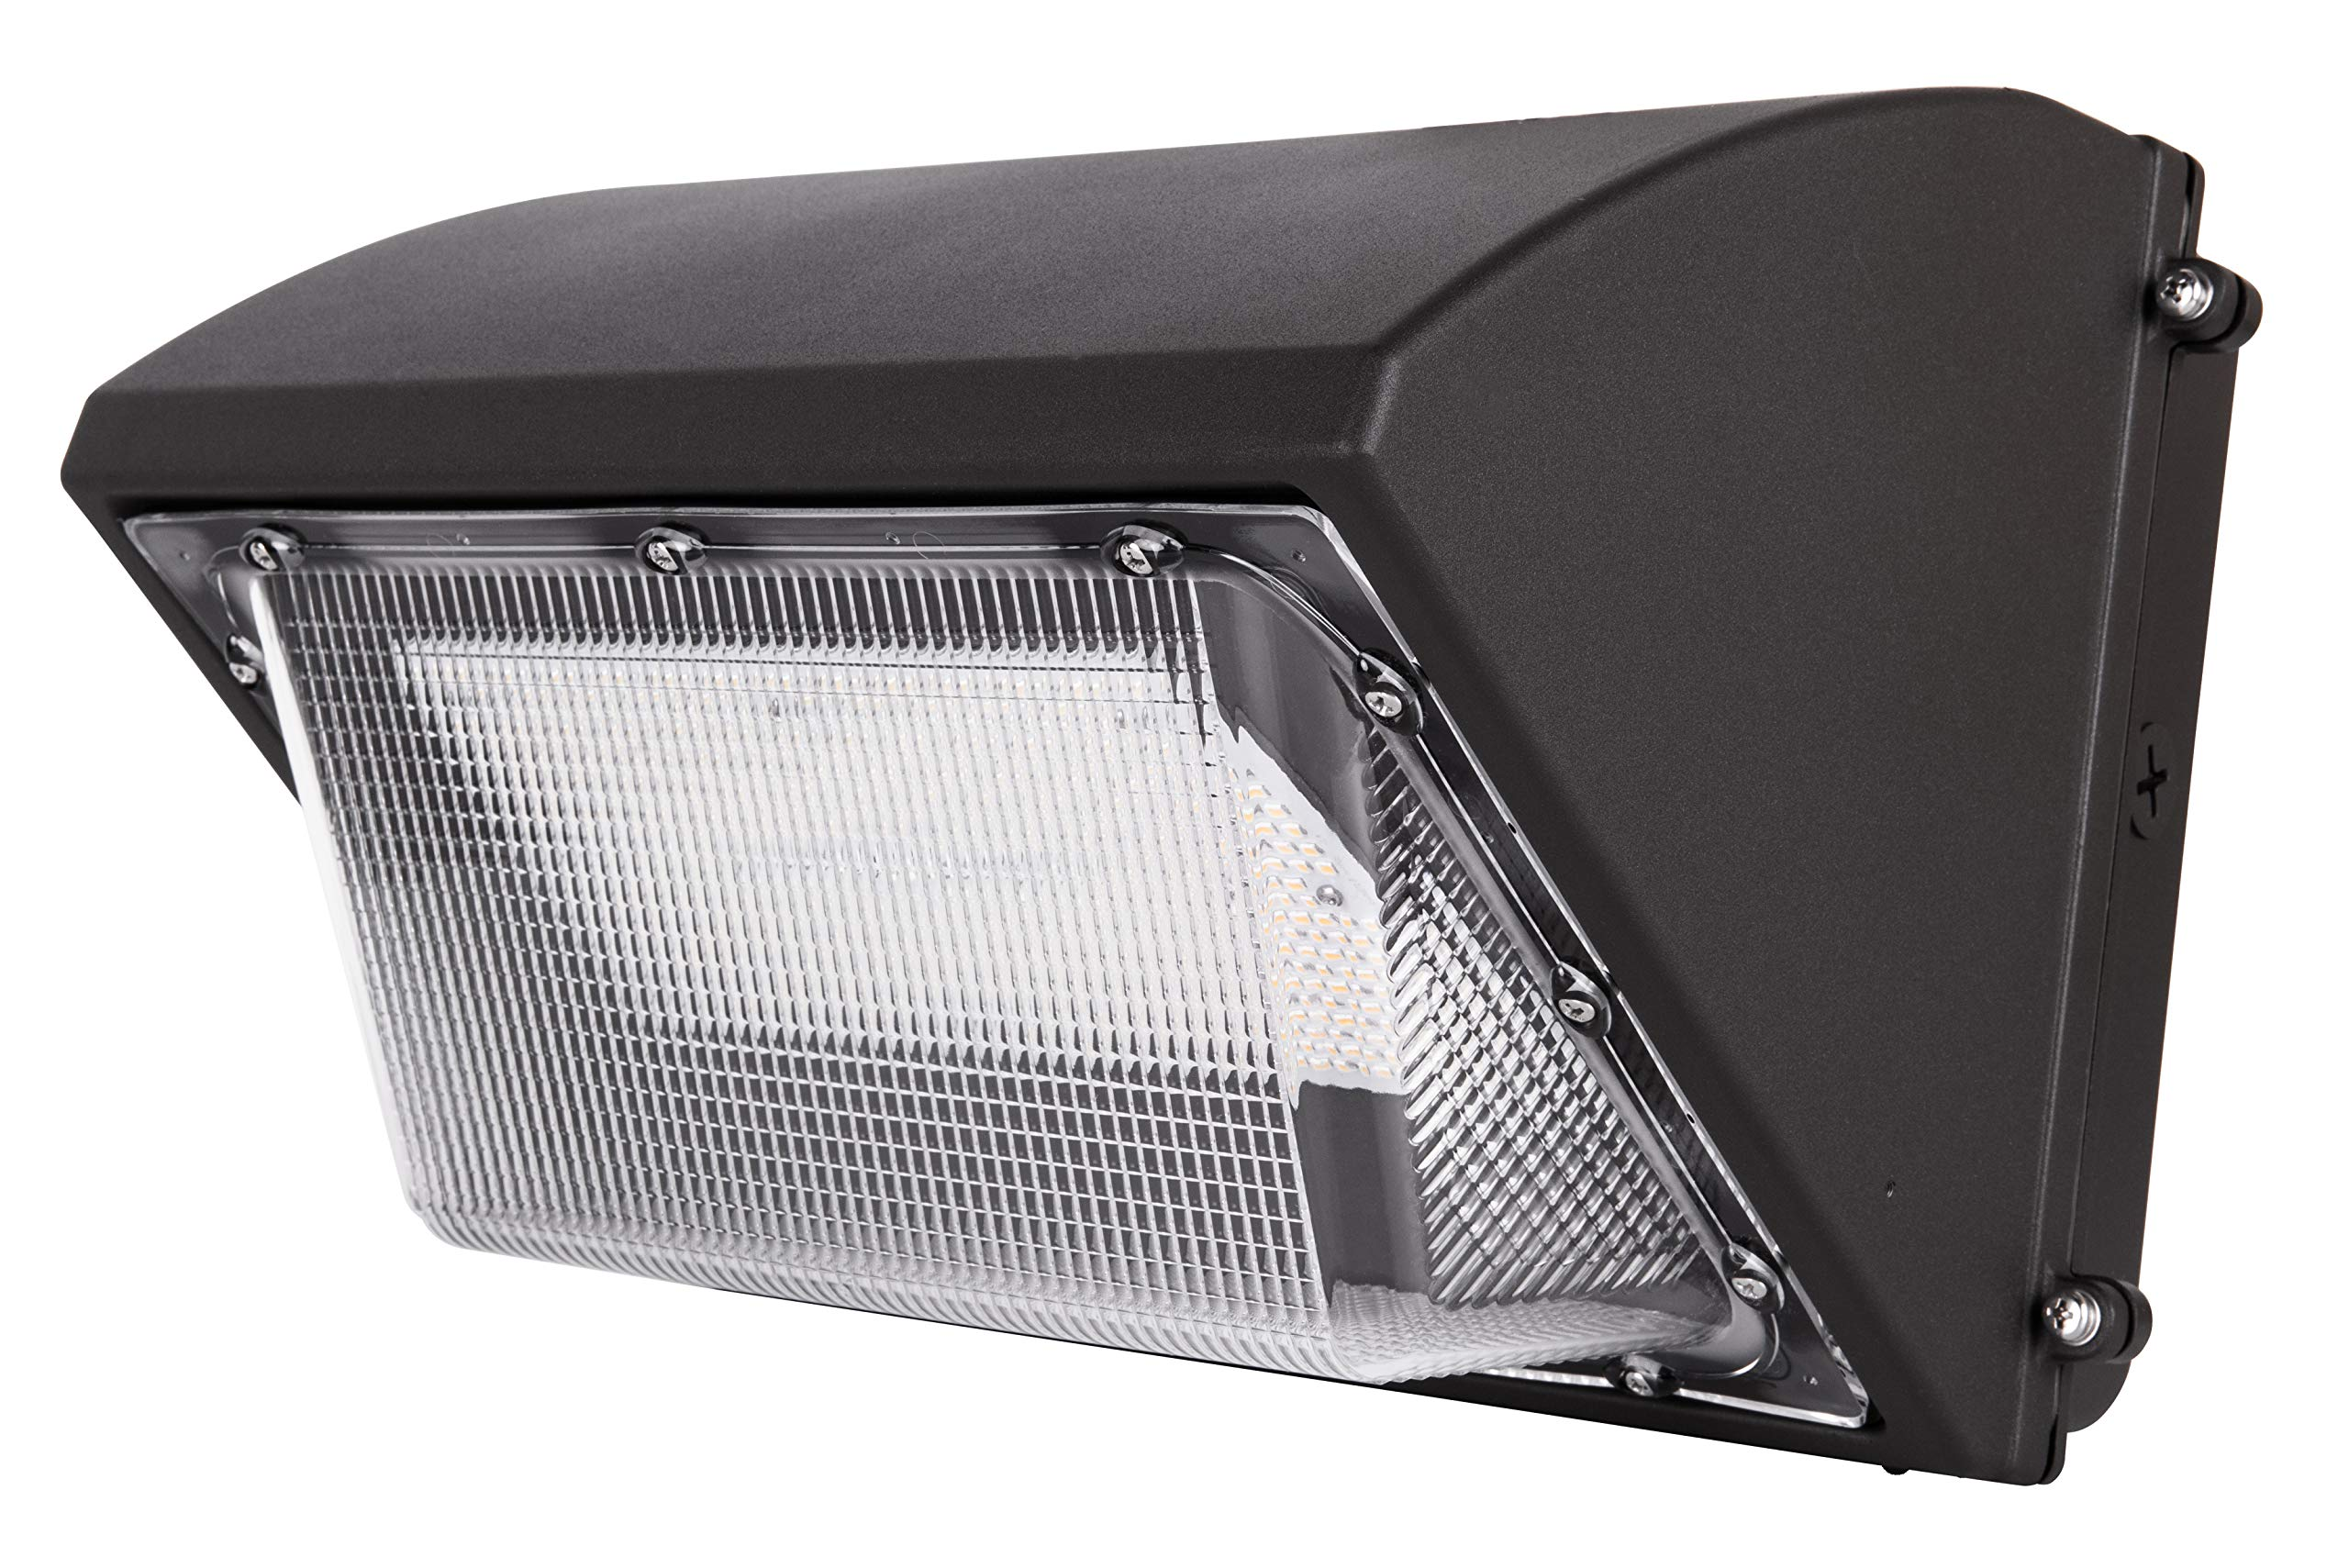 Hyperikon LED Wall Pack 70W Fixture, 275-350W HPS/HID Replacement, 5000K, Commercial and Industrial Outdoor Lighting, IP65 Waterproof - DLC & UL